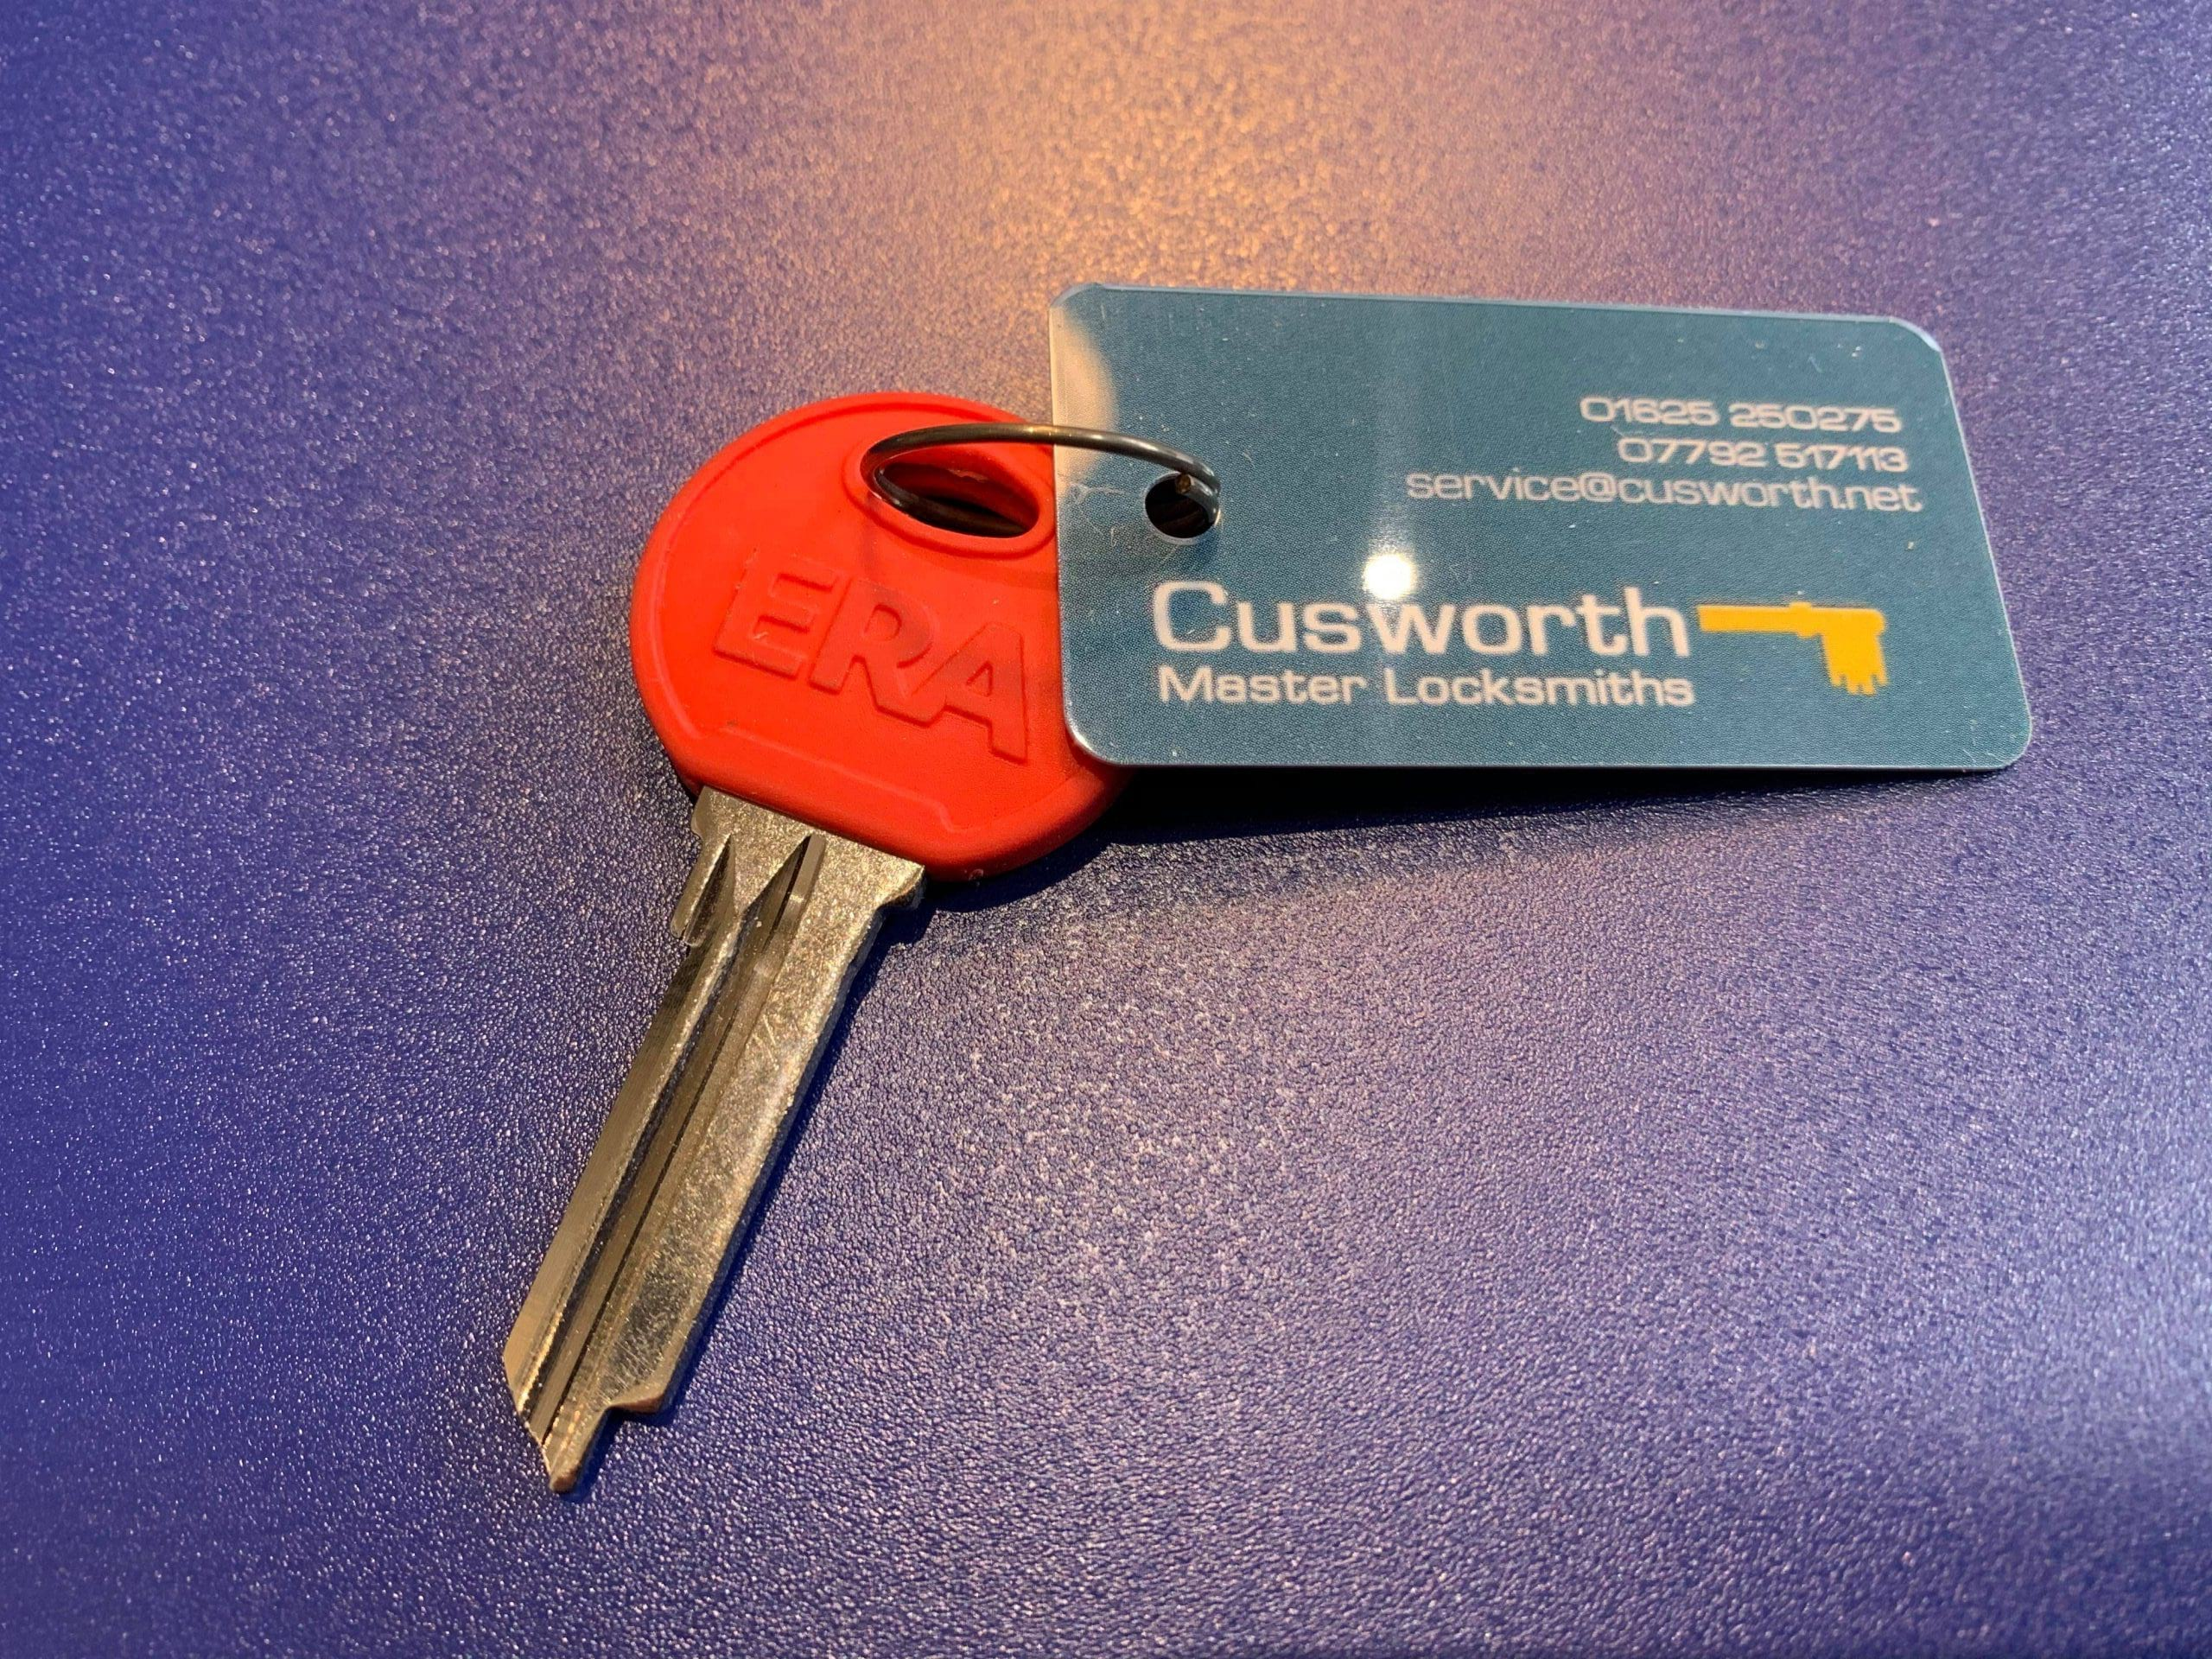 Era Fortress key cut by Cusworth Master Locksmiths.